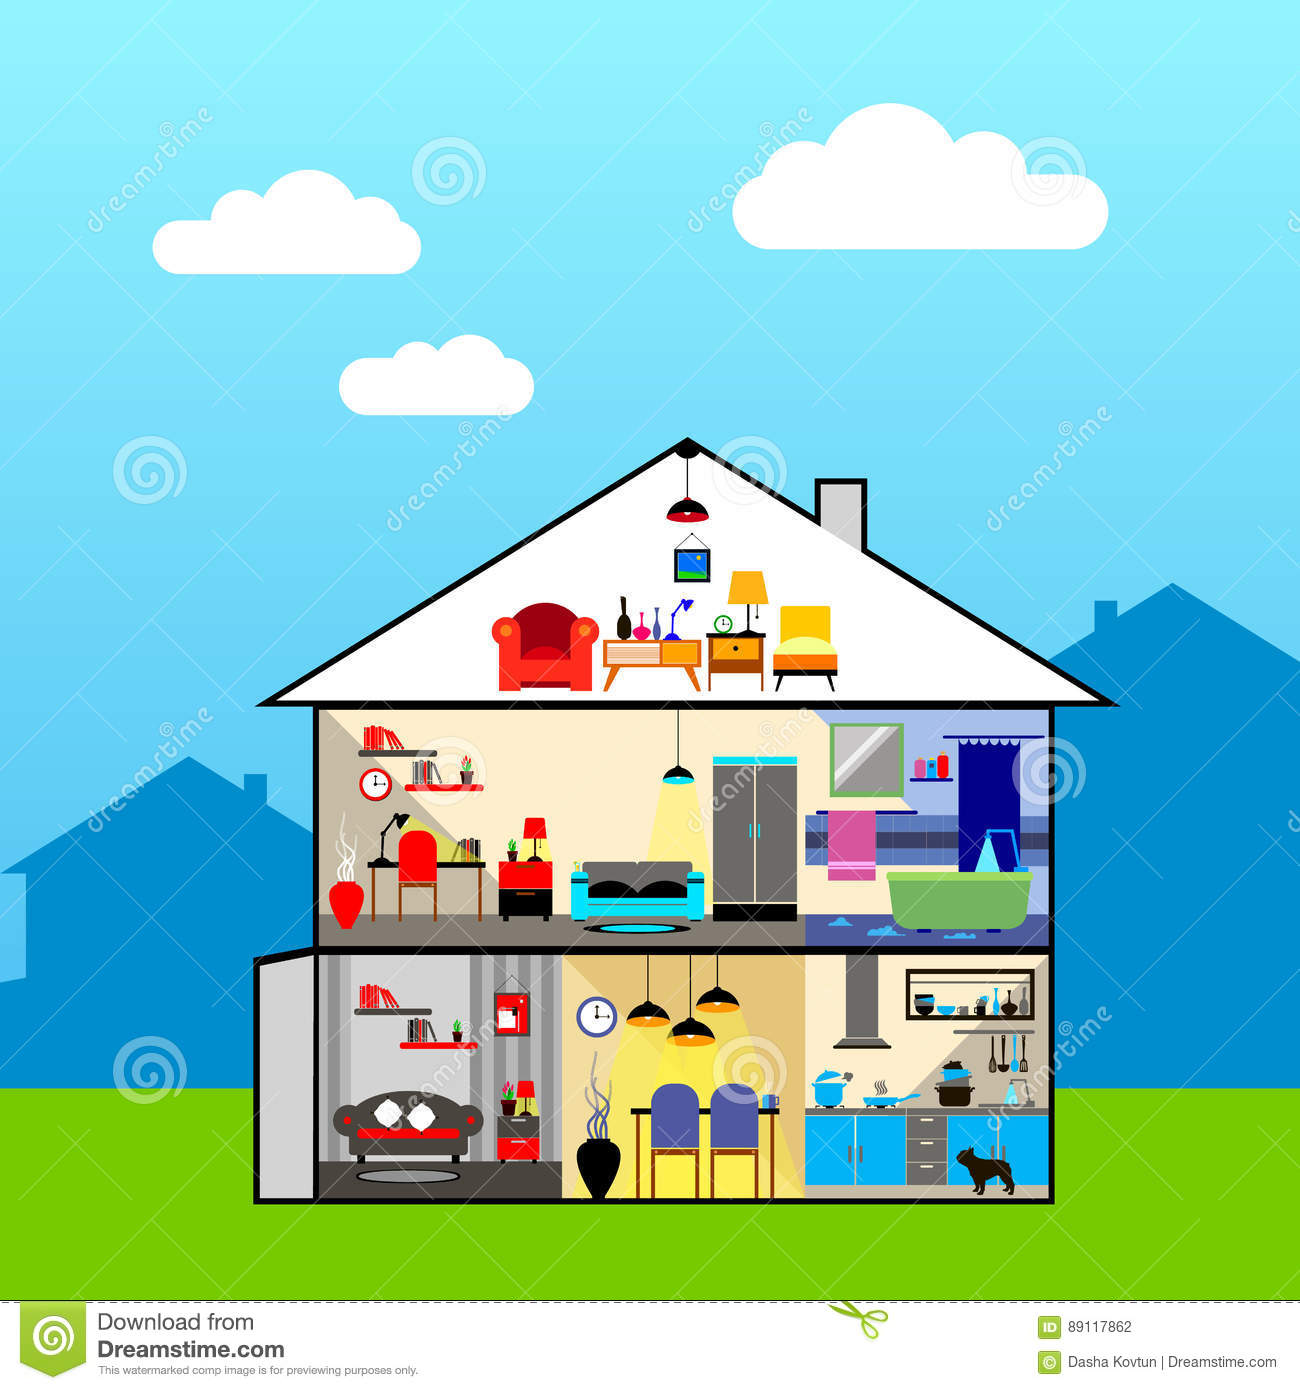 House in cut. Detailed modern house interior. Rooms with furnitu